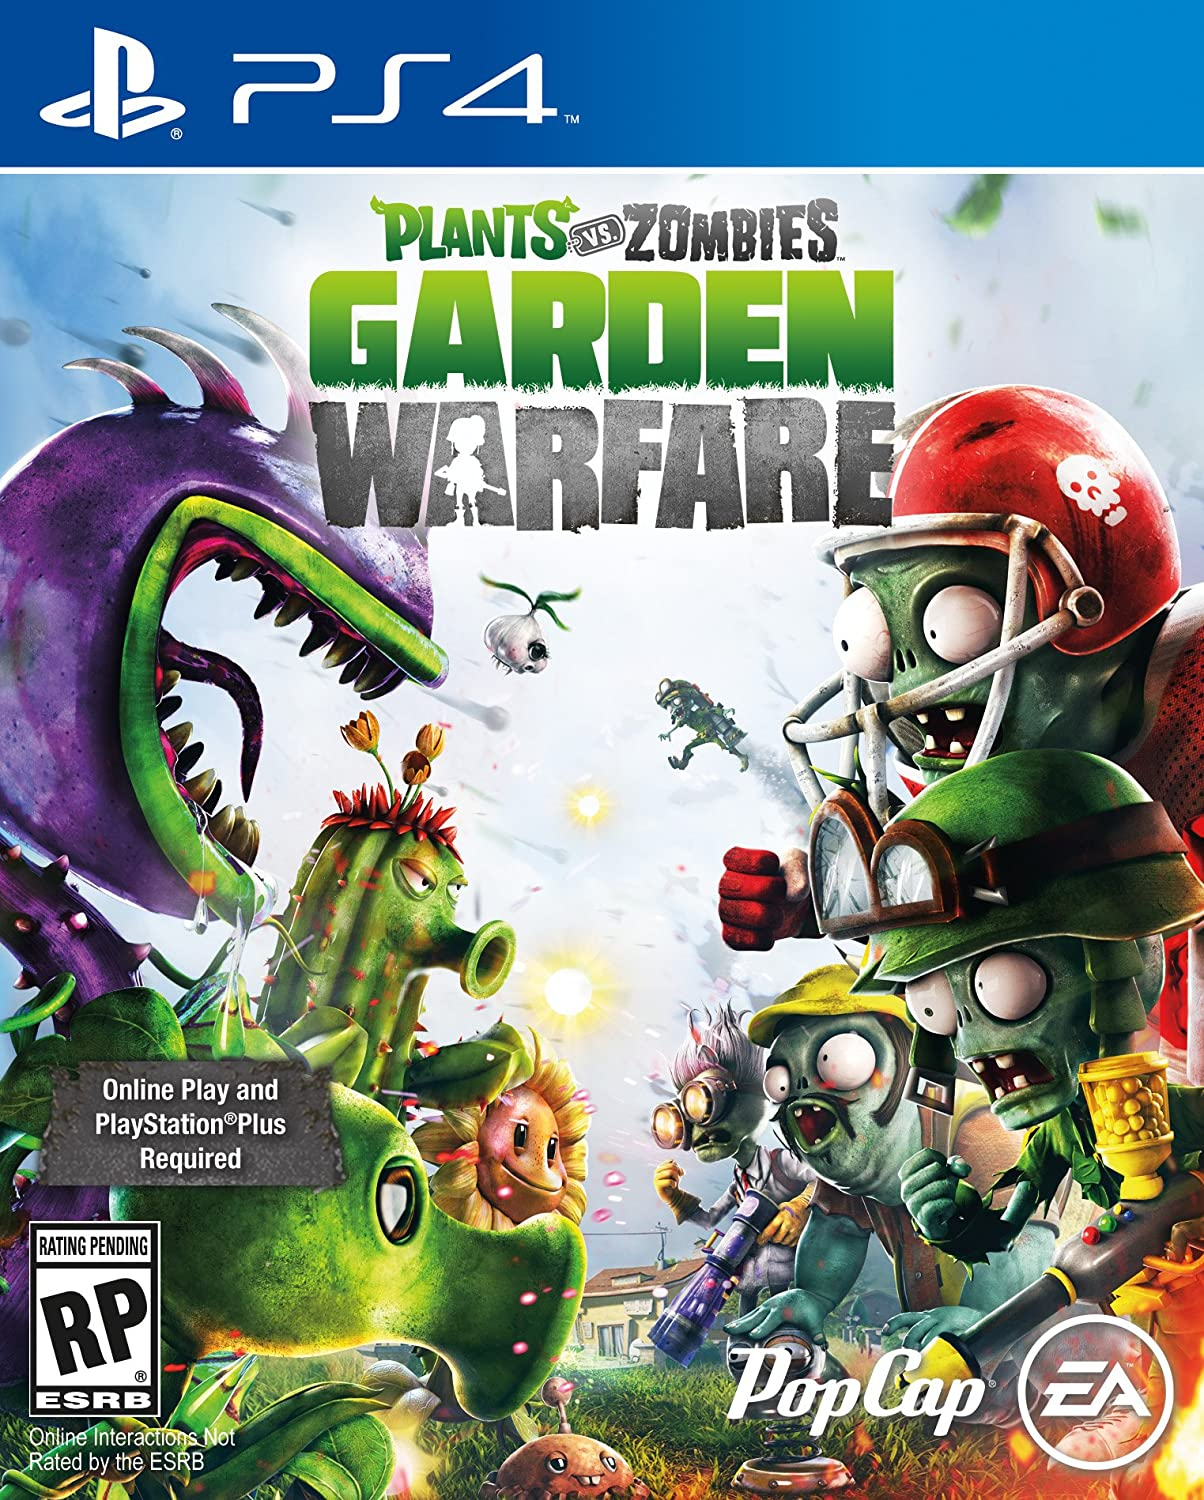 bugs garden on rendering playstation issues vs plants zombies issue game pro td p warfare